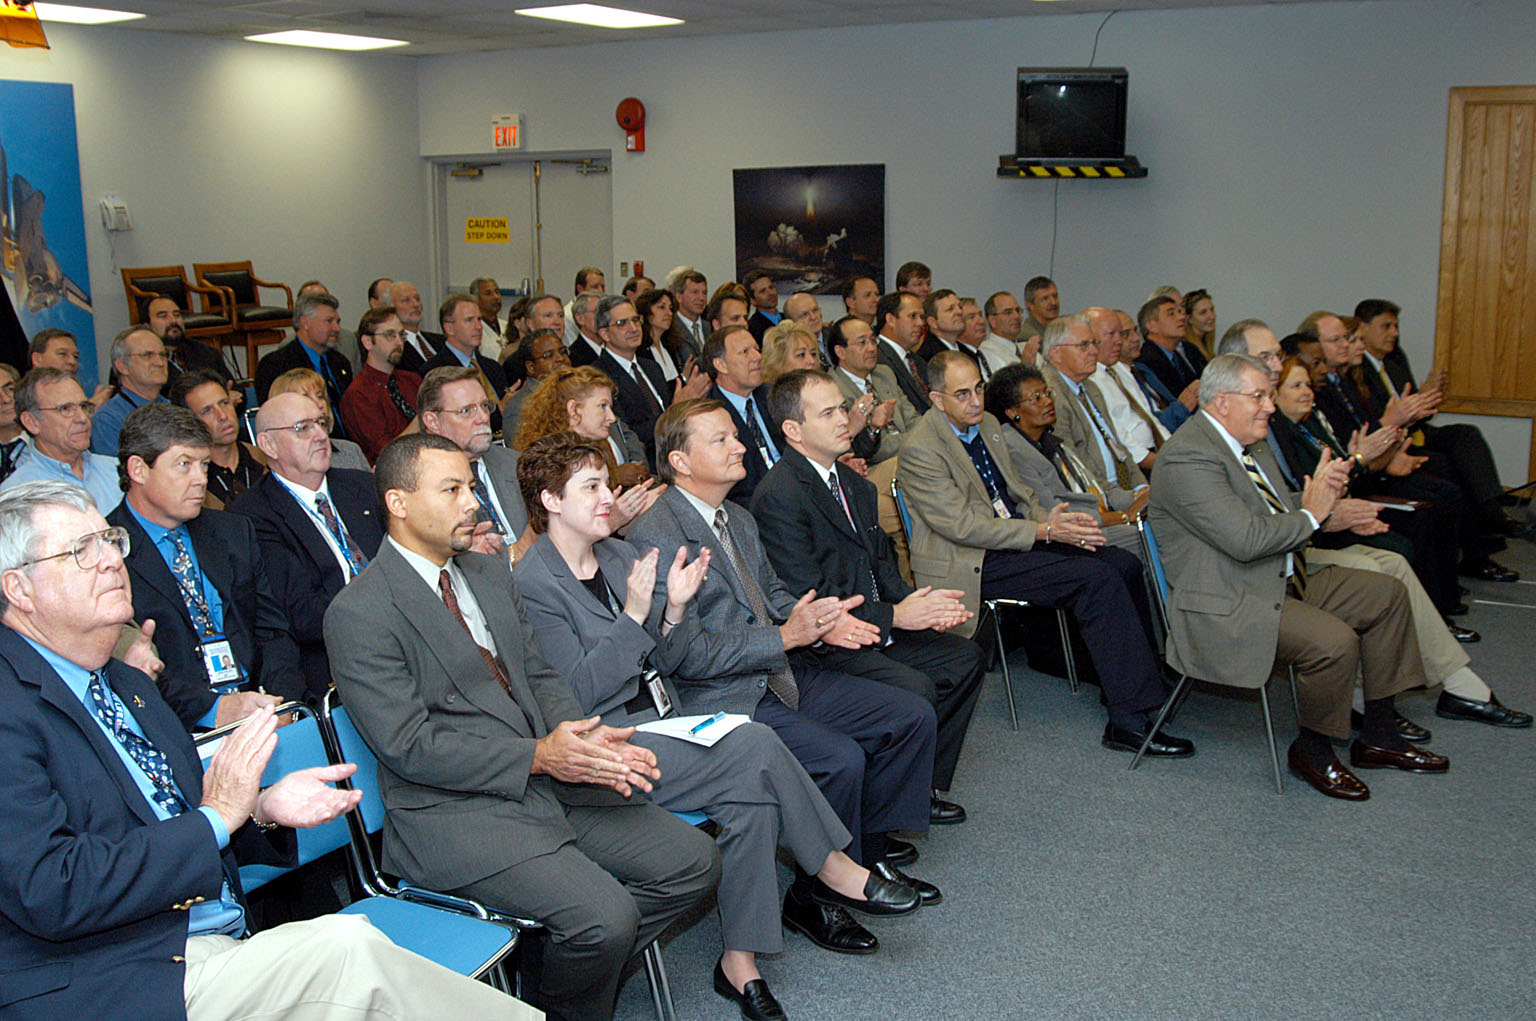 KENNEDY SPACE CENTER, FLA. -- From the KSC television studio, KSC management and other employees applaud President George W. Bush, who addressed the public and an assembly of government officials at NASA Headquarters, outlining a new focus and vision for the space agency. Fourth from left is Mike Leinbach, Shuttle launch director; at right, front row, are Bill Pickavance vice president and associate program manager of Florida Operations, United Space Alliance (USA) and Howard DeCastro, USA vice president and Space Shuttle program manager. The President stated his goals for NASA?s new mission: Completing the International Space Station, retiring the Space Shuttle orbiters, developing a new crew exploration vehicle, and returning to the moon and beyond within the next two decades. Pres. Bush was welcomed by NASA Administrator Sean O?Keefe and Expedition 8 Commander Michael Foale, who greeted him from the International Space Station. Members of the Washington, D.C., audience included astronauts Eileen Collins, Ed Lu and Michael Lopez-Alegria, and former astronaut Gene Cernan.